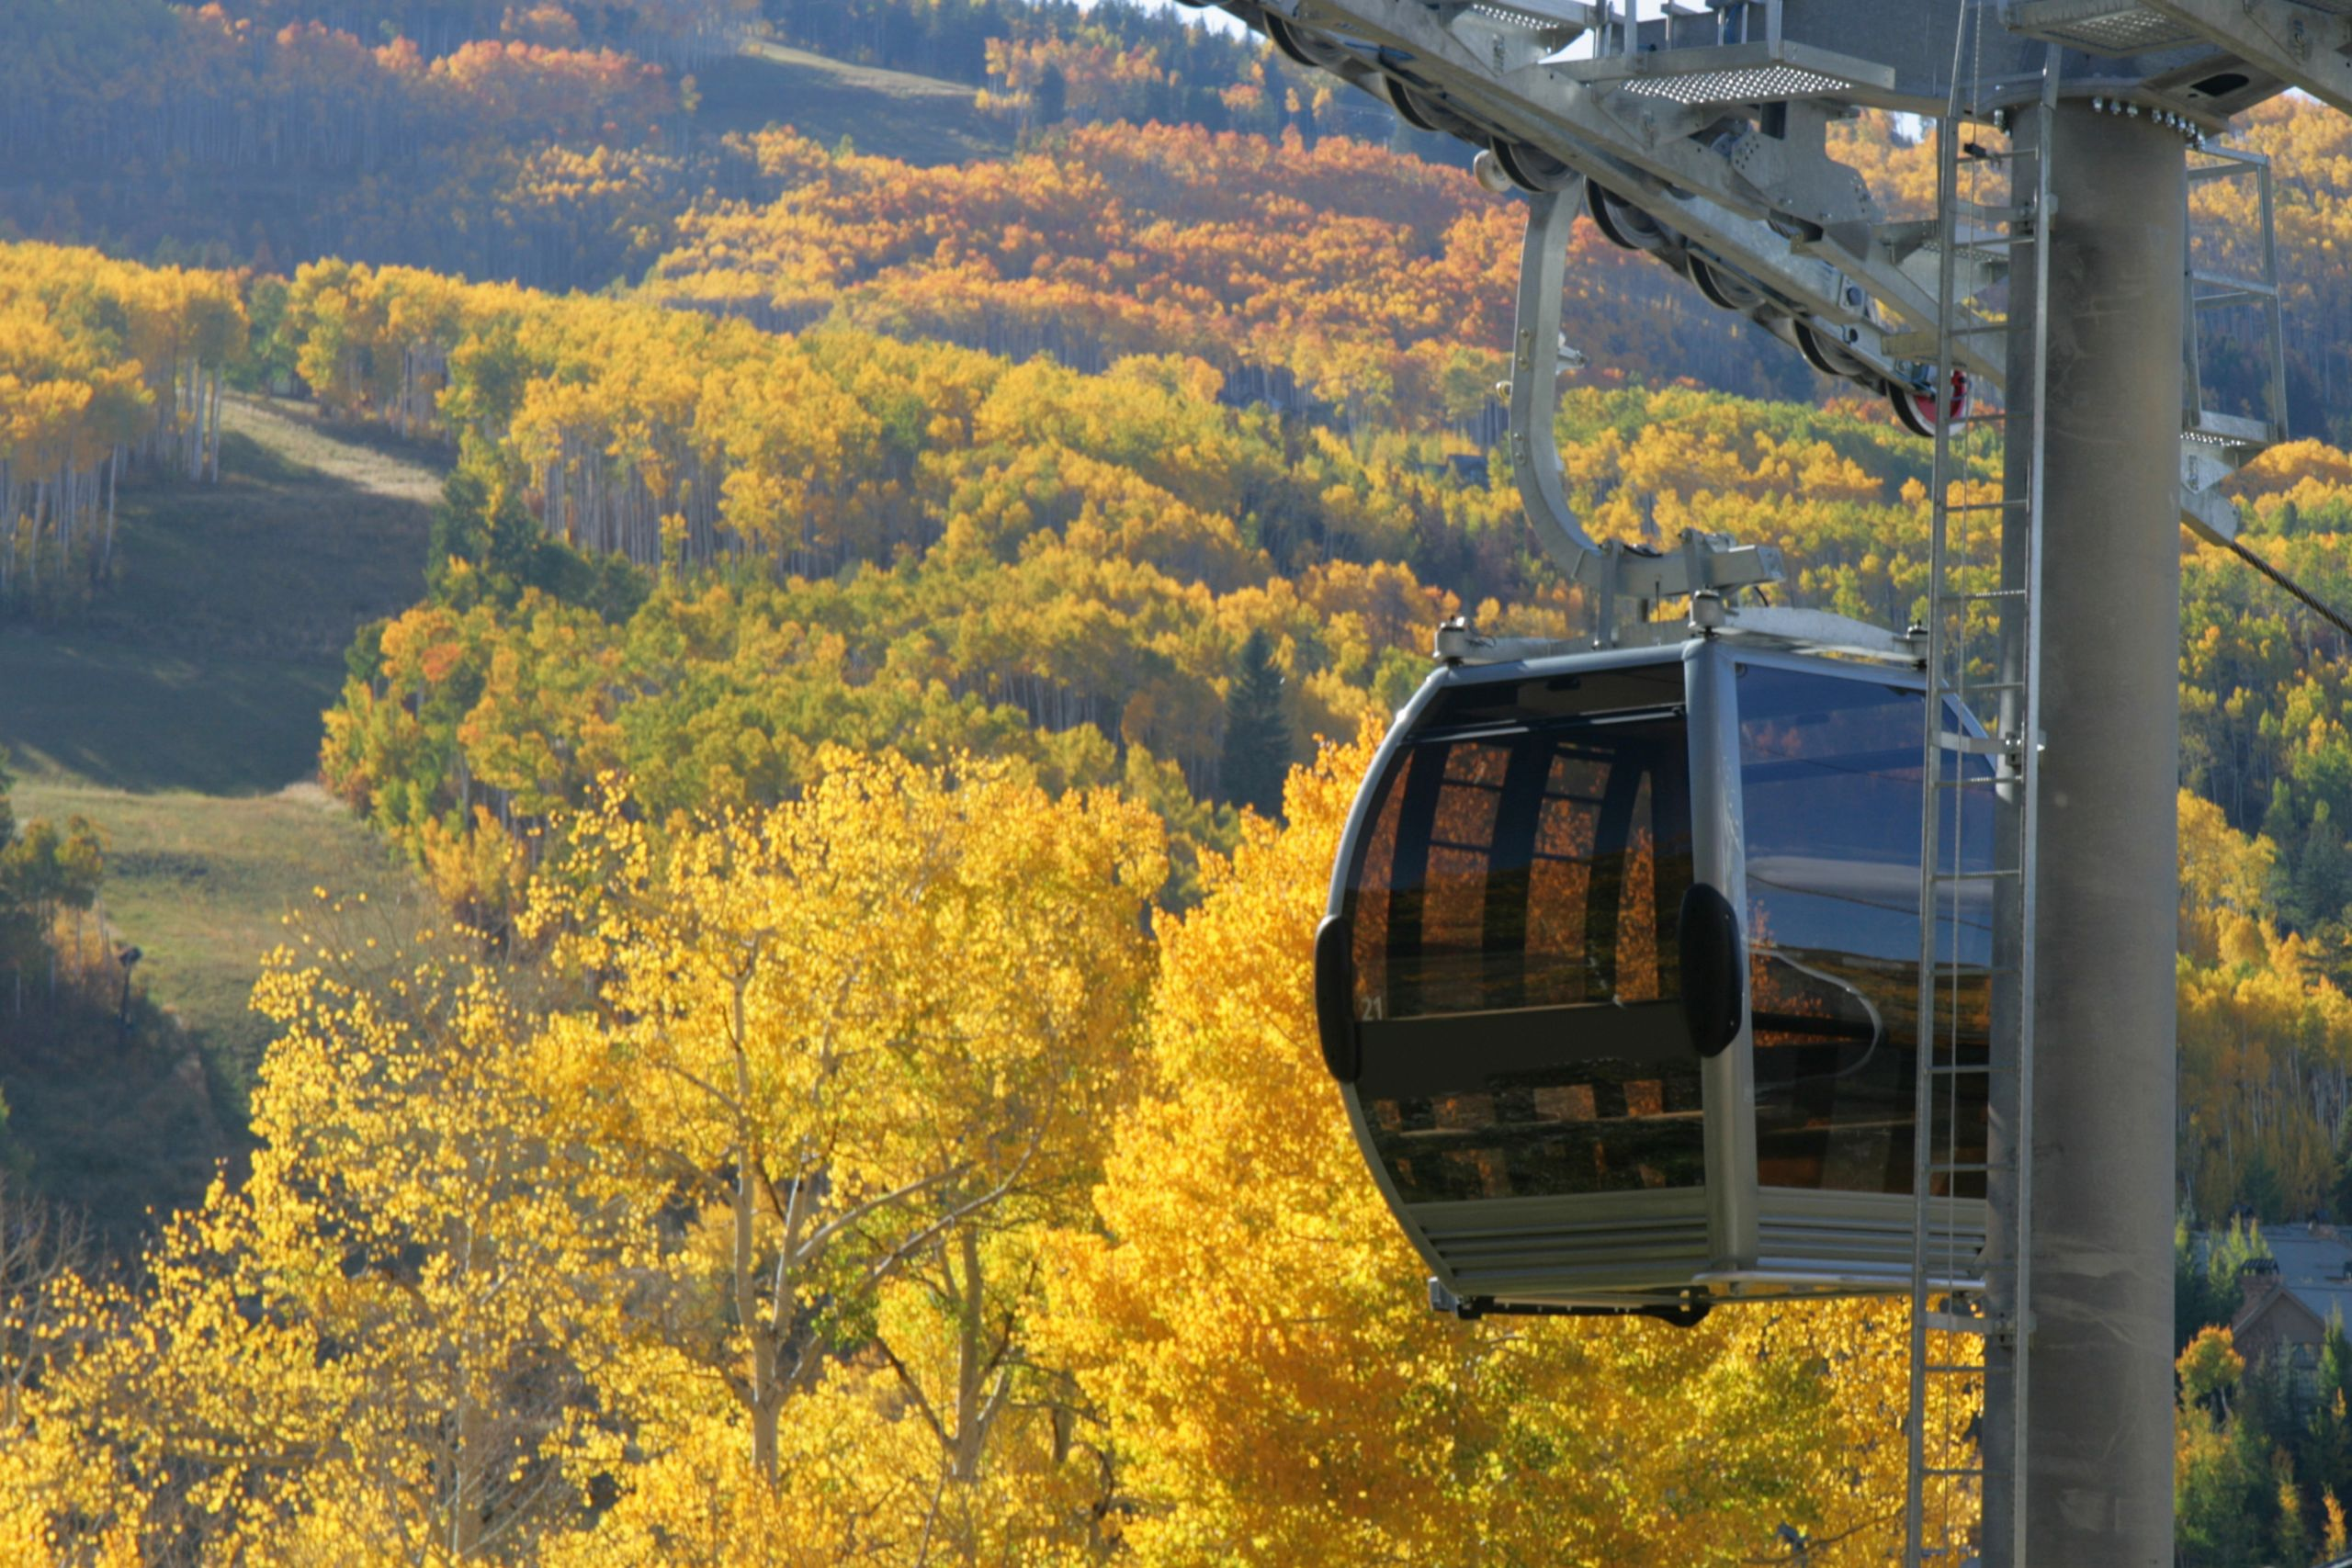 Enjoy the fall colors in Vail